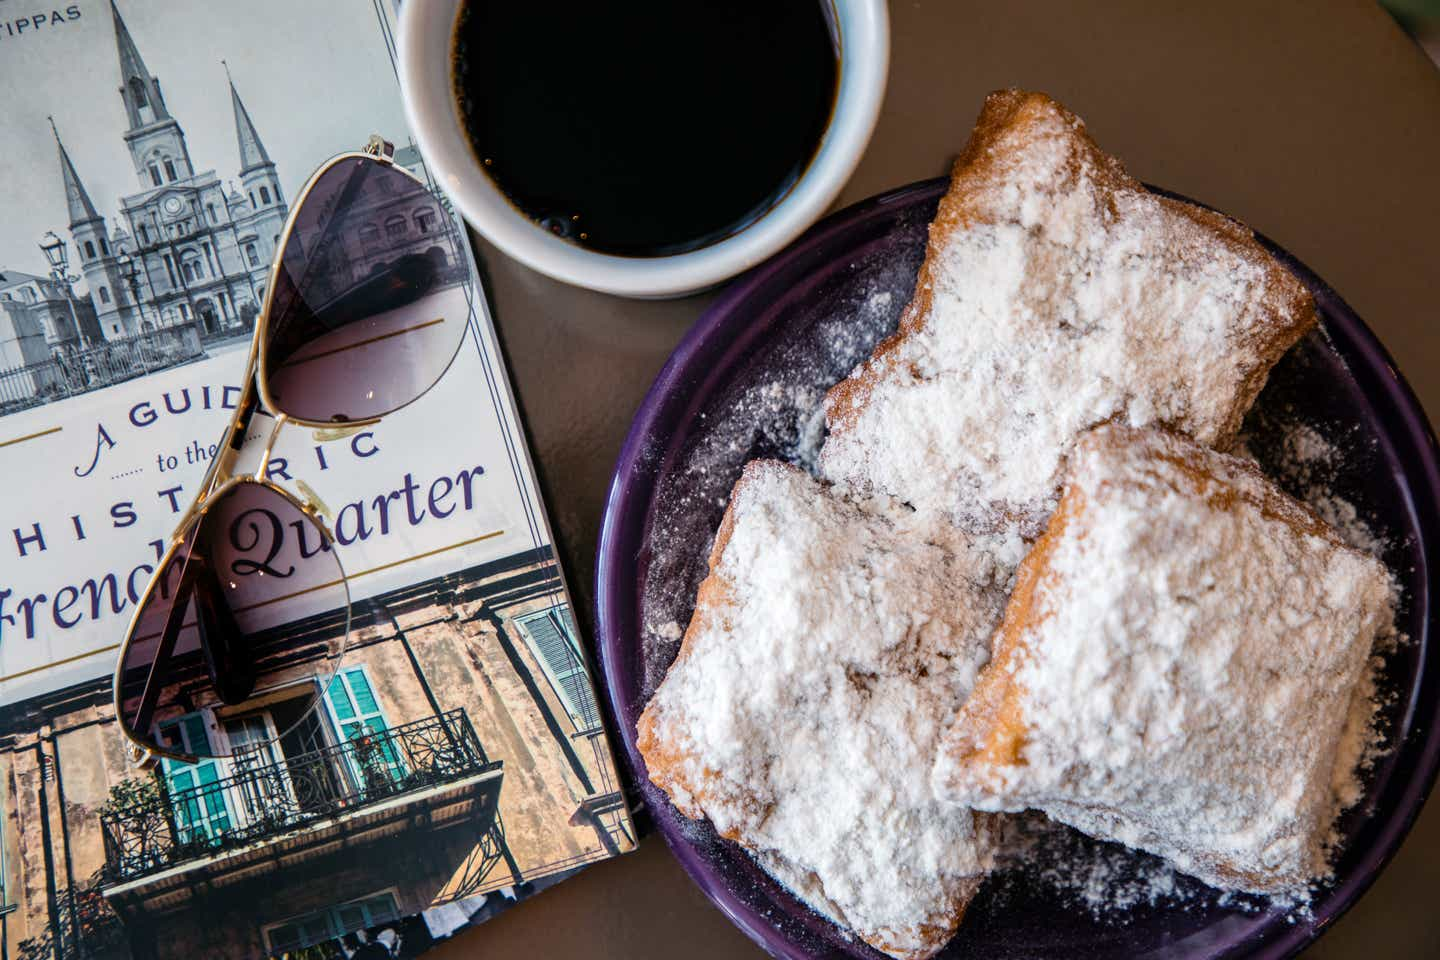 Beignets placed on a table next to a white mug full of coffee, sunglasses, and brochures that read 'A guide to the Historic French Quarter.'